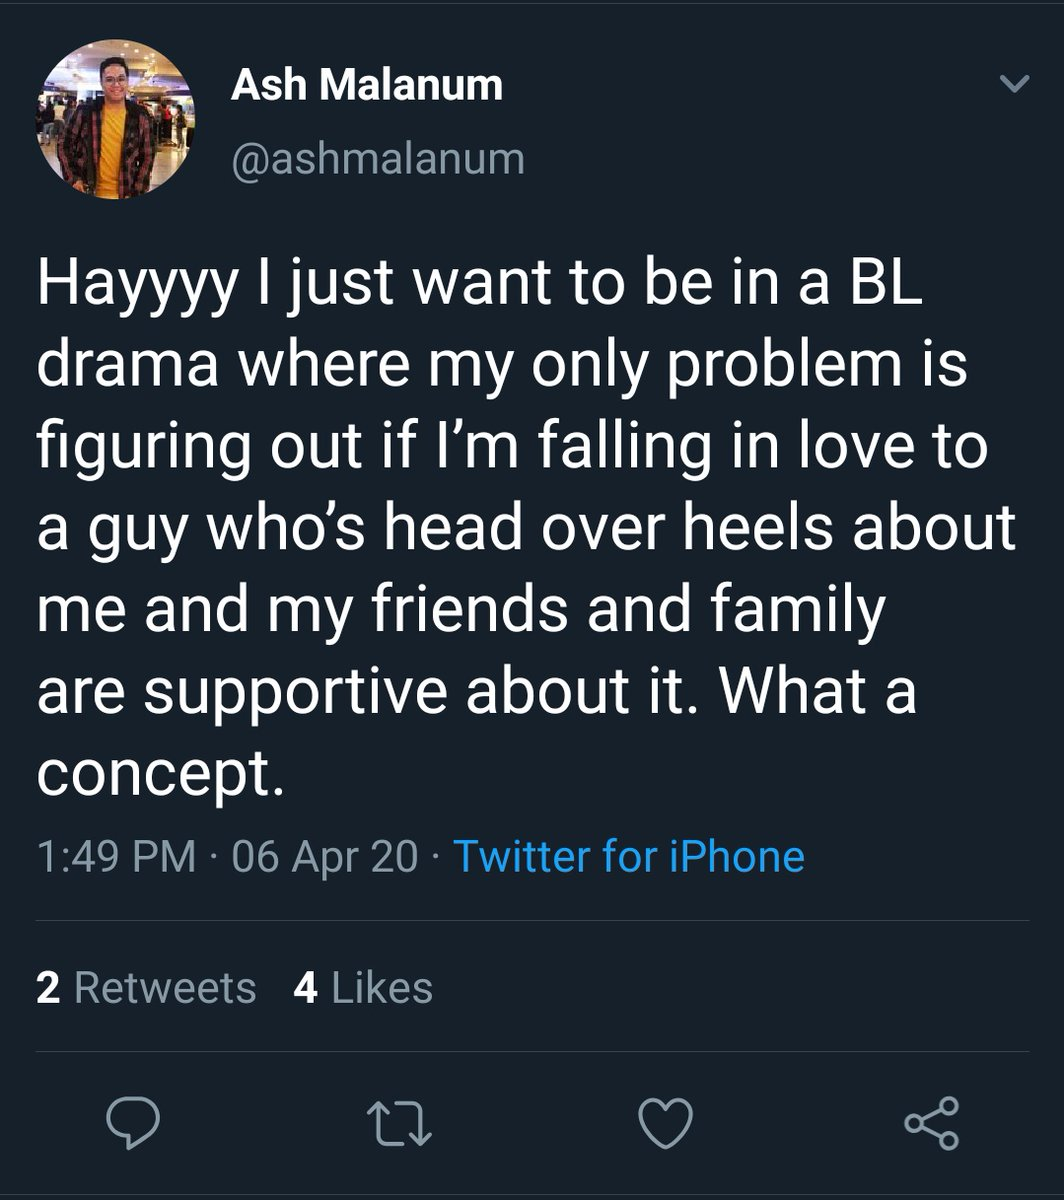 With no intention to diminish the vast horizons of his astounding creative imagination, I just want to express how happy it makes me that a member of the LGBTQ+ community was finally granted the spotlight to tell the BL story they DREAMT of telling.Thank you  @ashmalanum